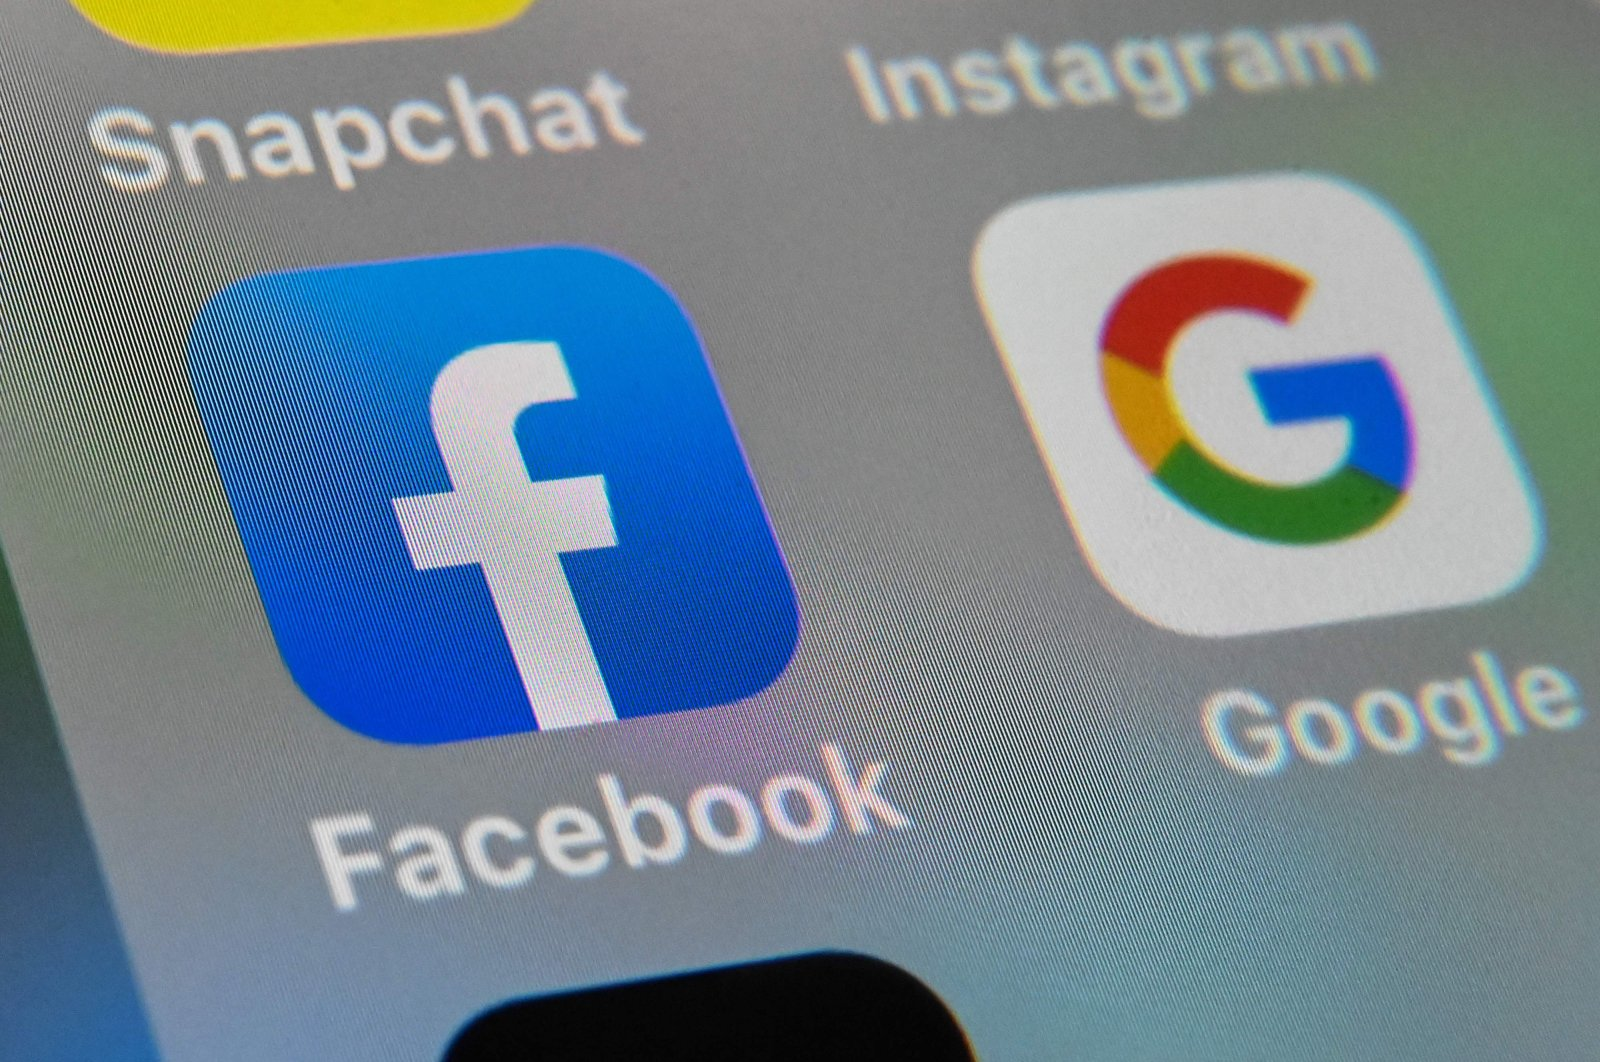 The logos of mobile apps Facebook and Google are displayed on a tablet in Lille, France, Oct. 1, 2019. (AFP Photo)